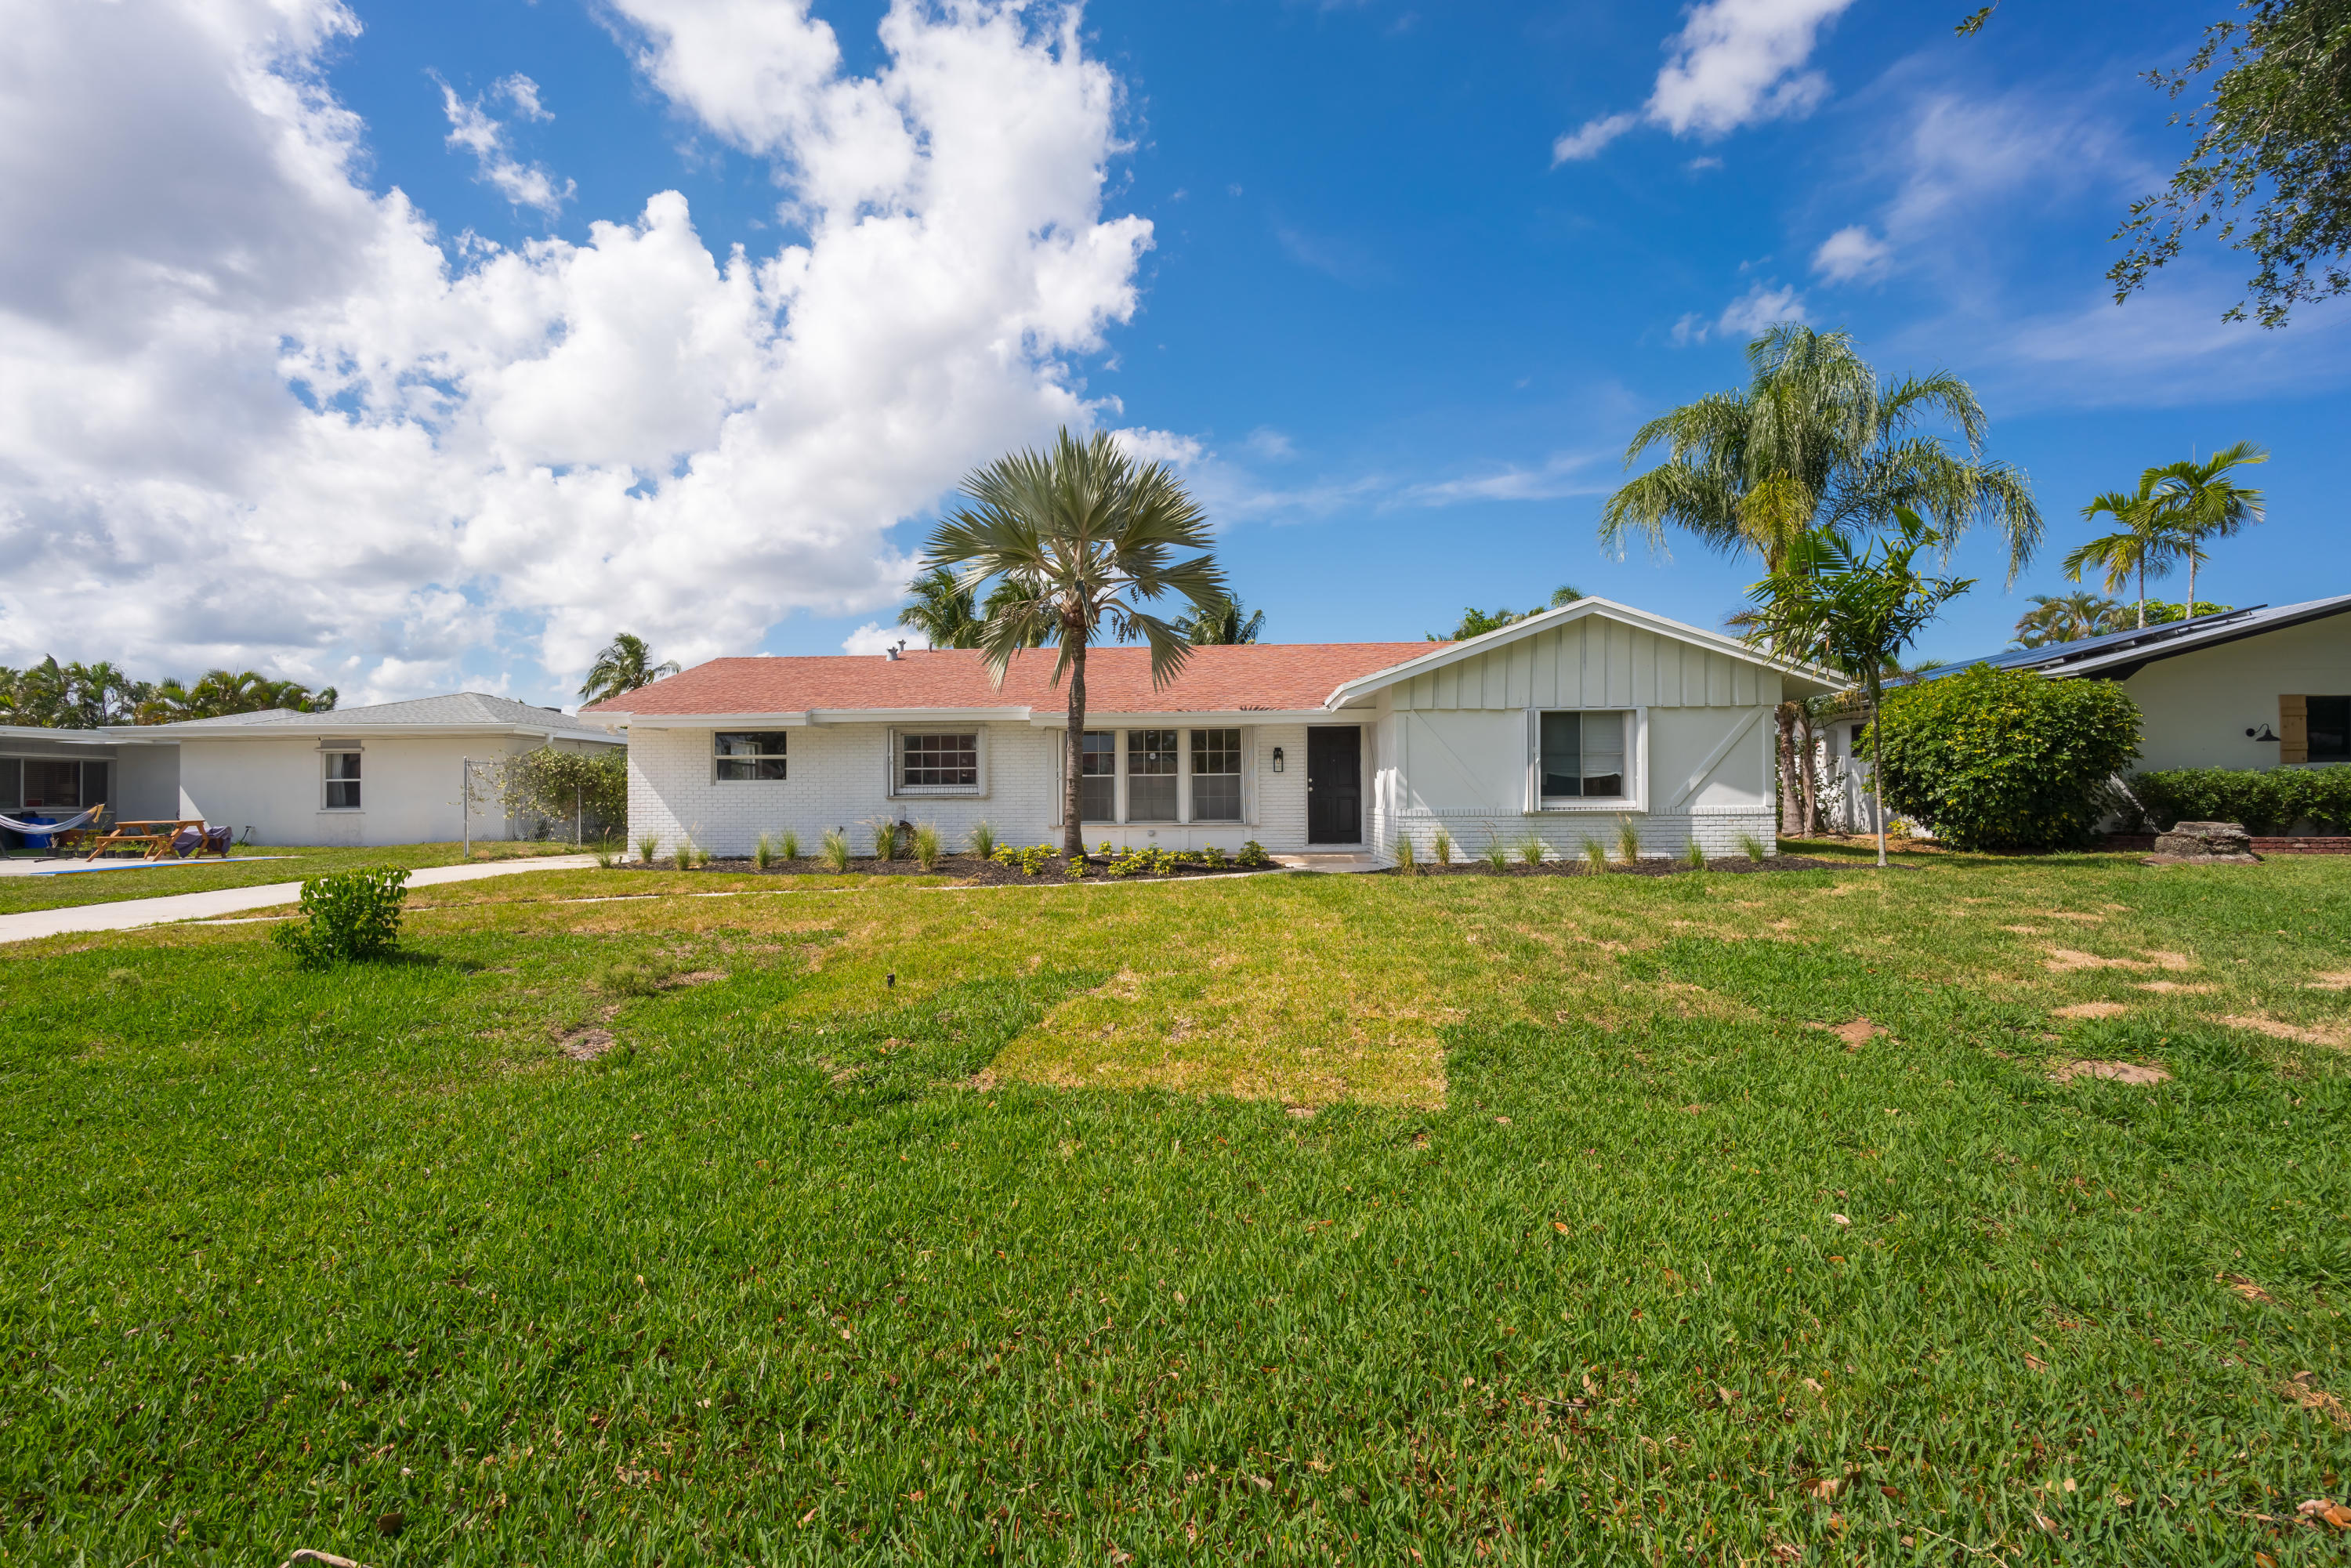 Come quick. Fully remodeled 3 bedroom pool home with garage. Large open floor plan in a nice, quiet neighborhood. Brand new flooring, master bathroom, freshly painted, new A/C, electrical, plumbing and pool equipment. Plenty of room for a small boat or large truck. This won't last long.